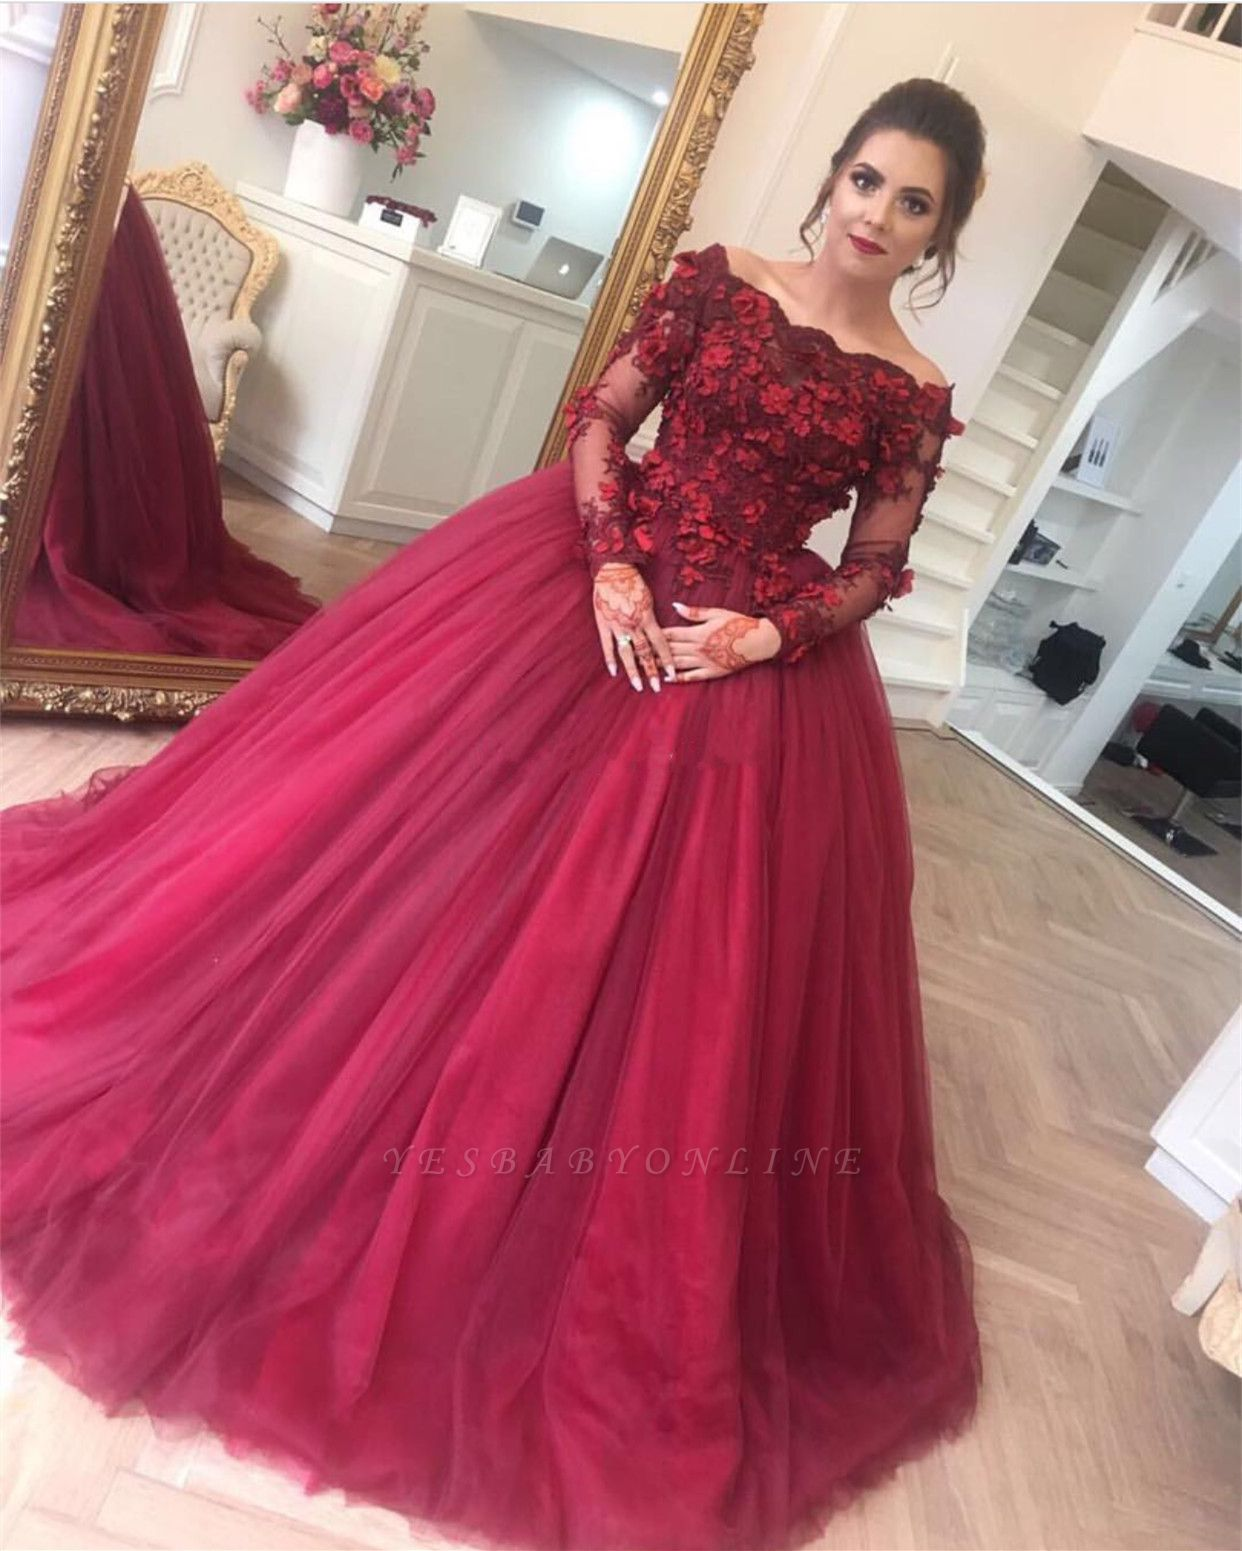 Long-Sleeves Off-The-Shoulder Applique Burgundy Ball Gown Prom Dresses